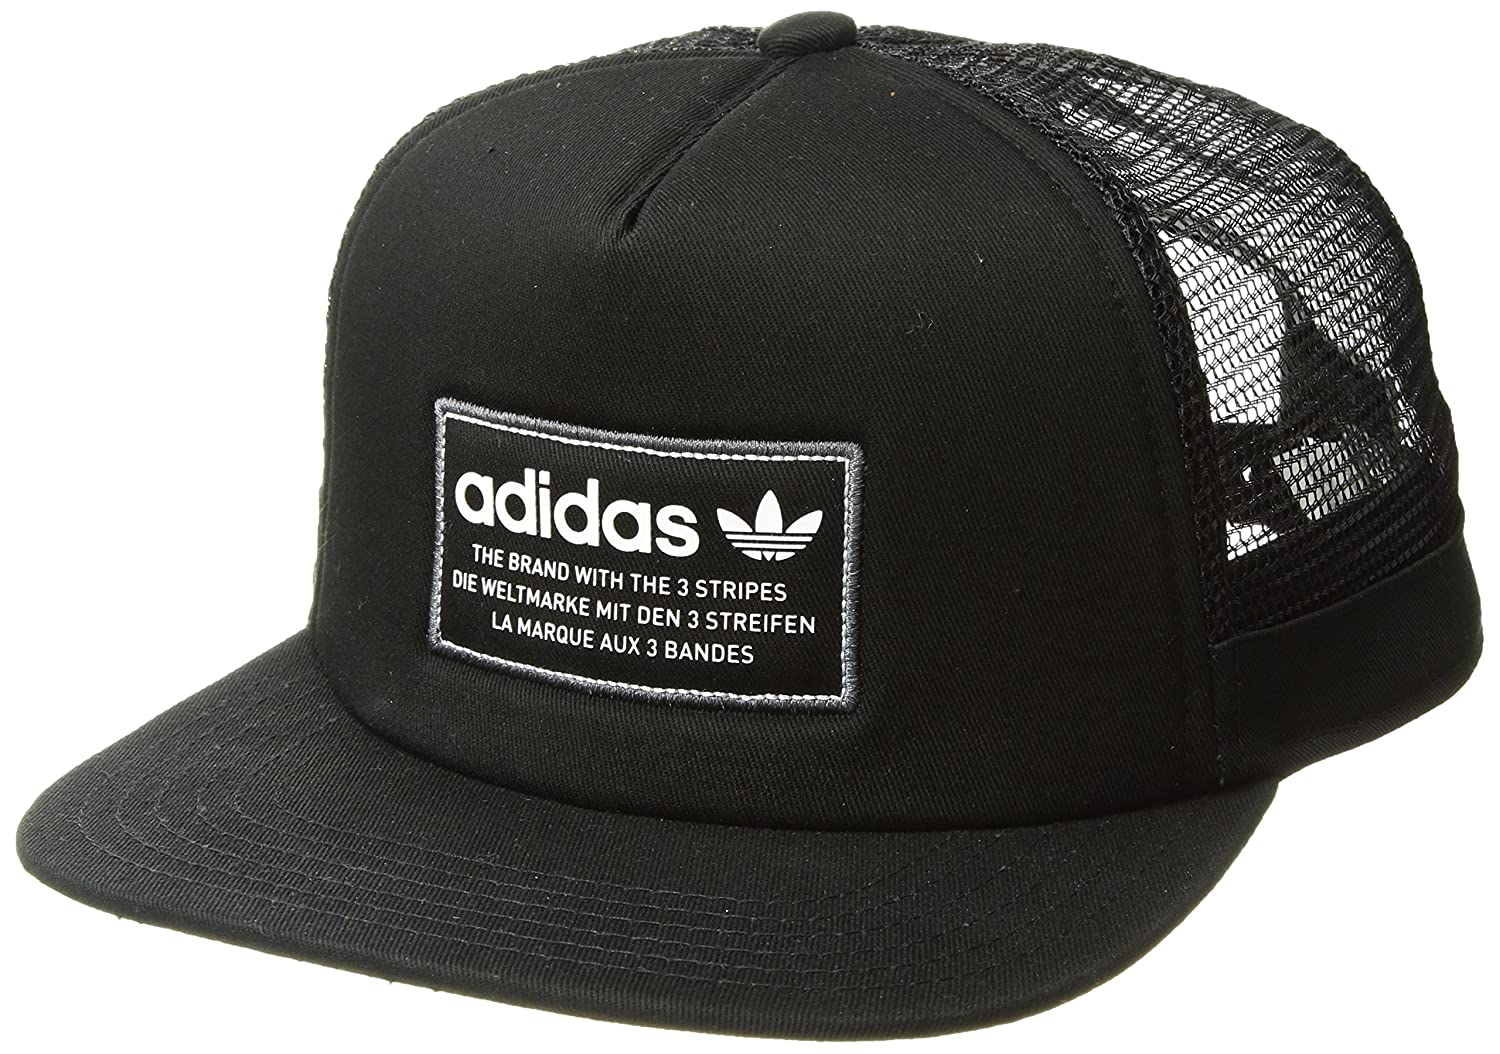 00d69a60f9 Adidas Men's Originals Patch Trucker Baseball Cap